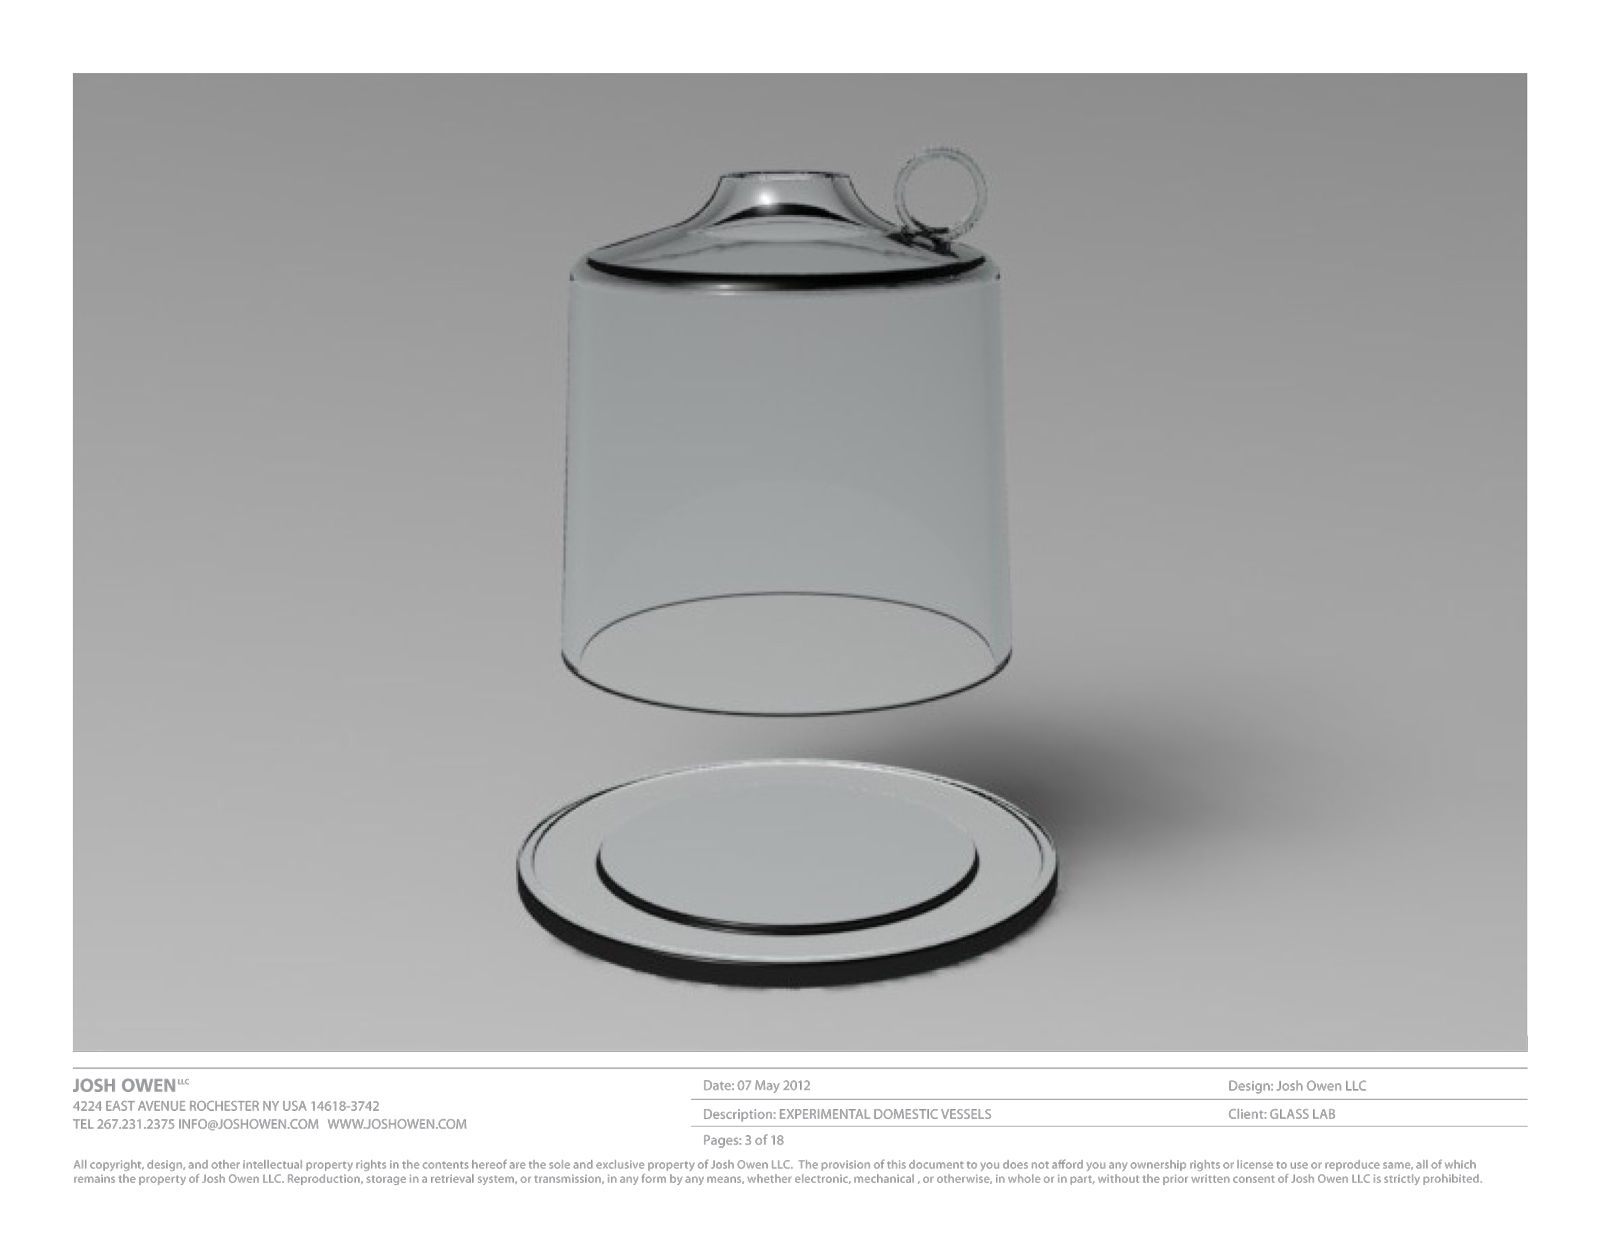 Design concept by Josh Owen for GlassLab in Corning, 2012